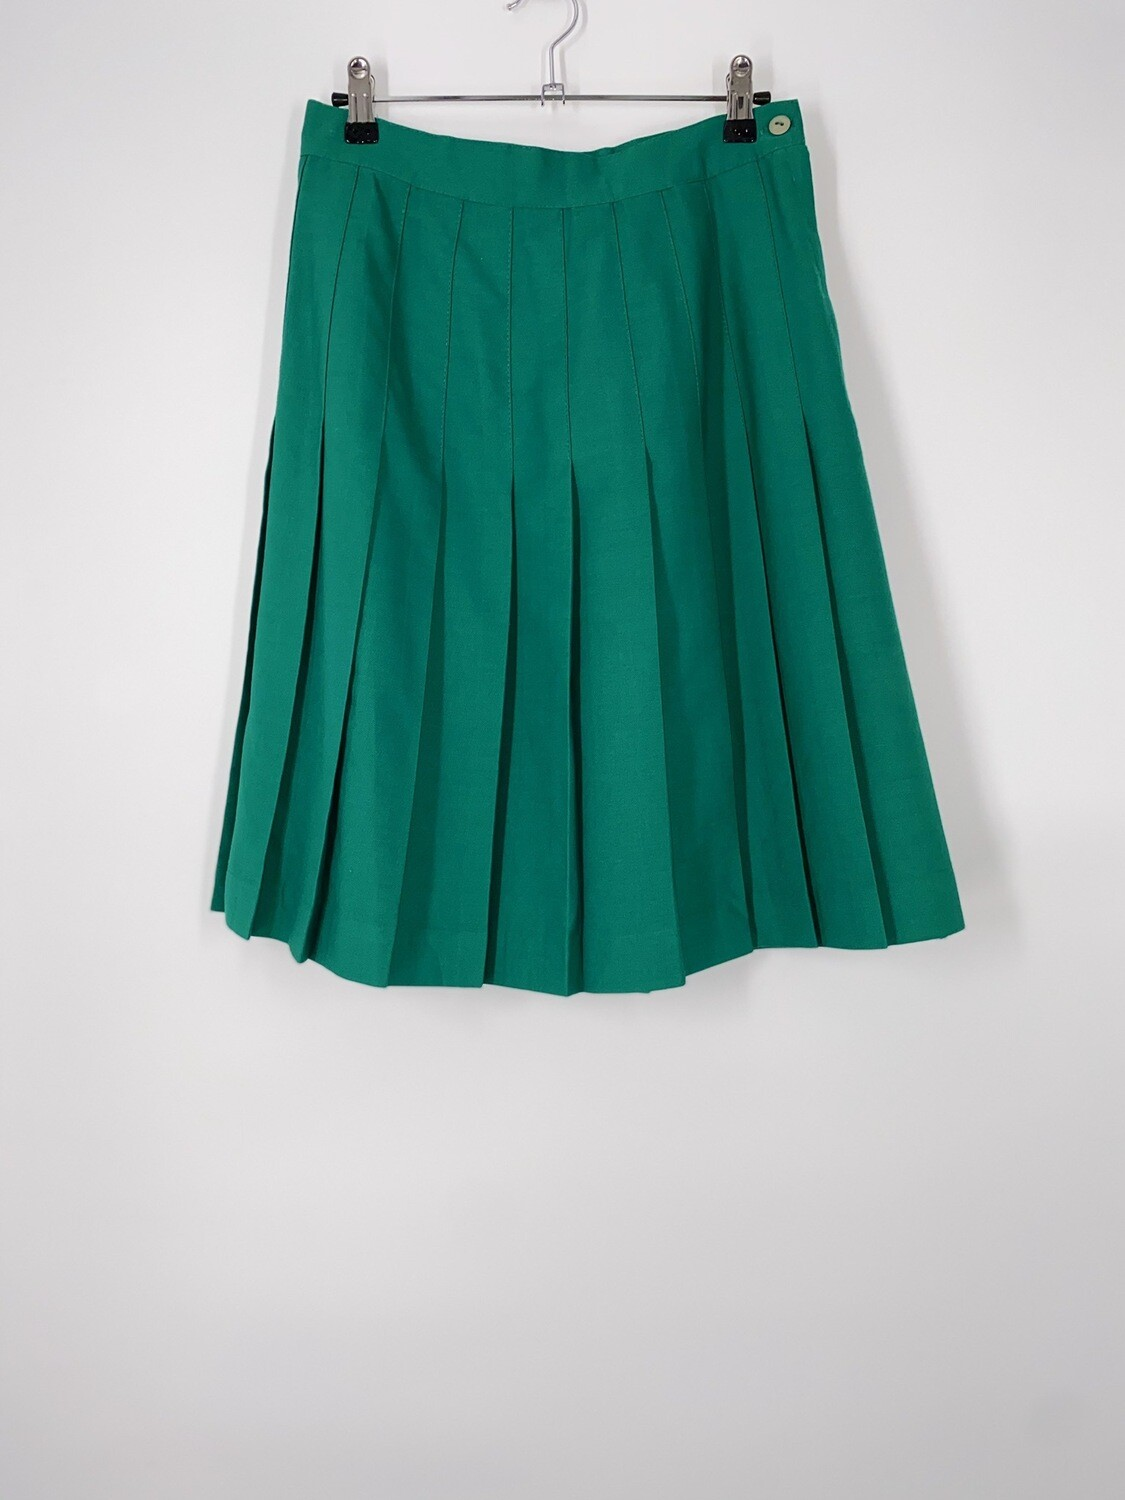 Green Tennis Skirt Size S